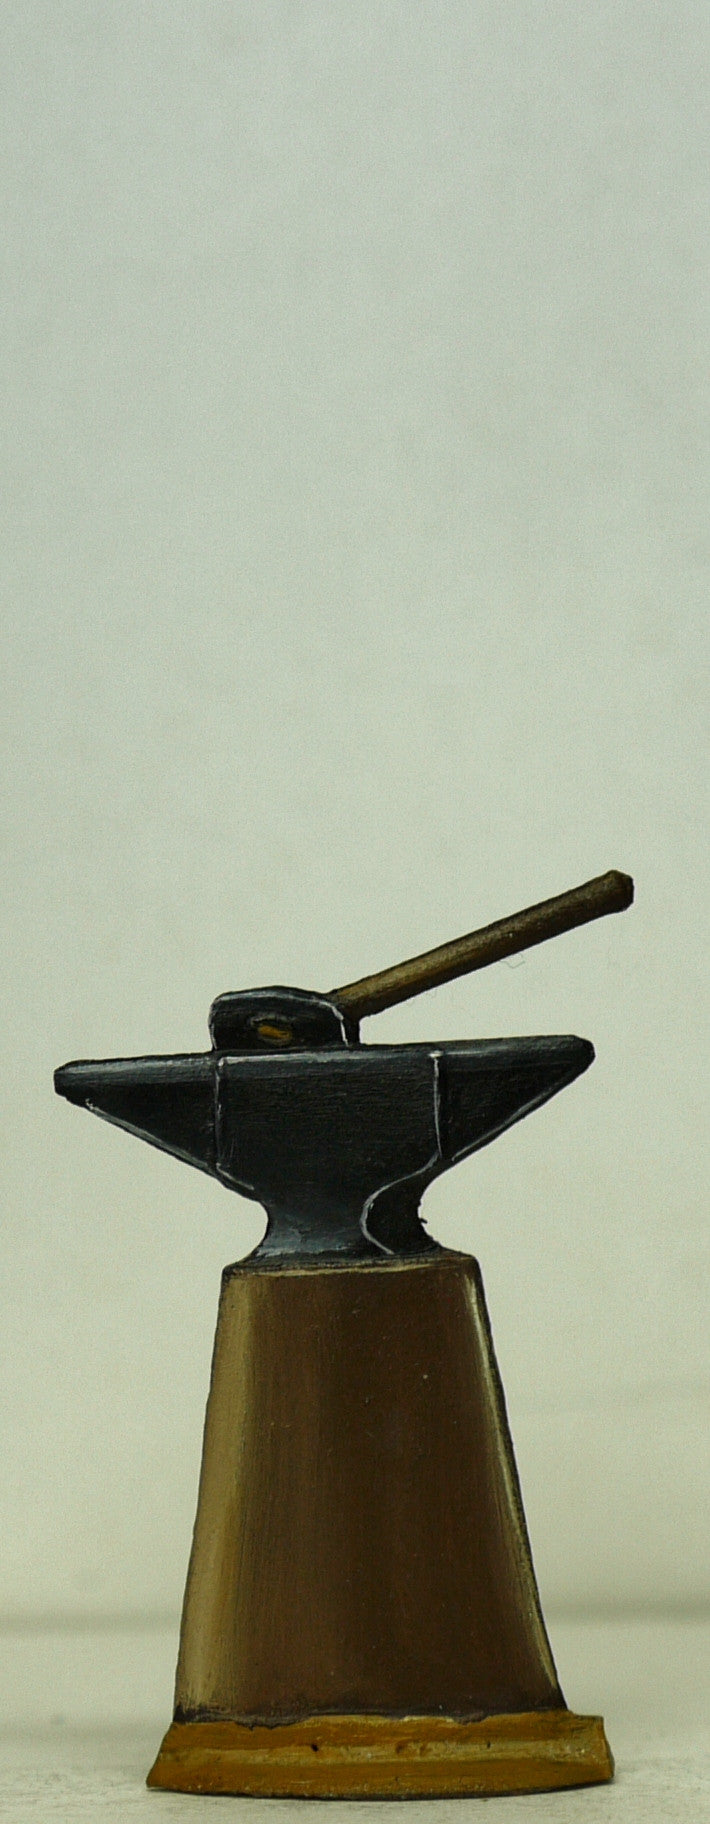 Anvil and hammer - Glorious Empires-Historical Miniatures